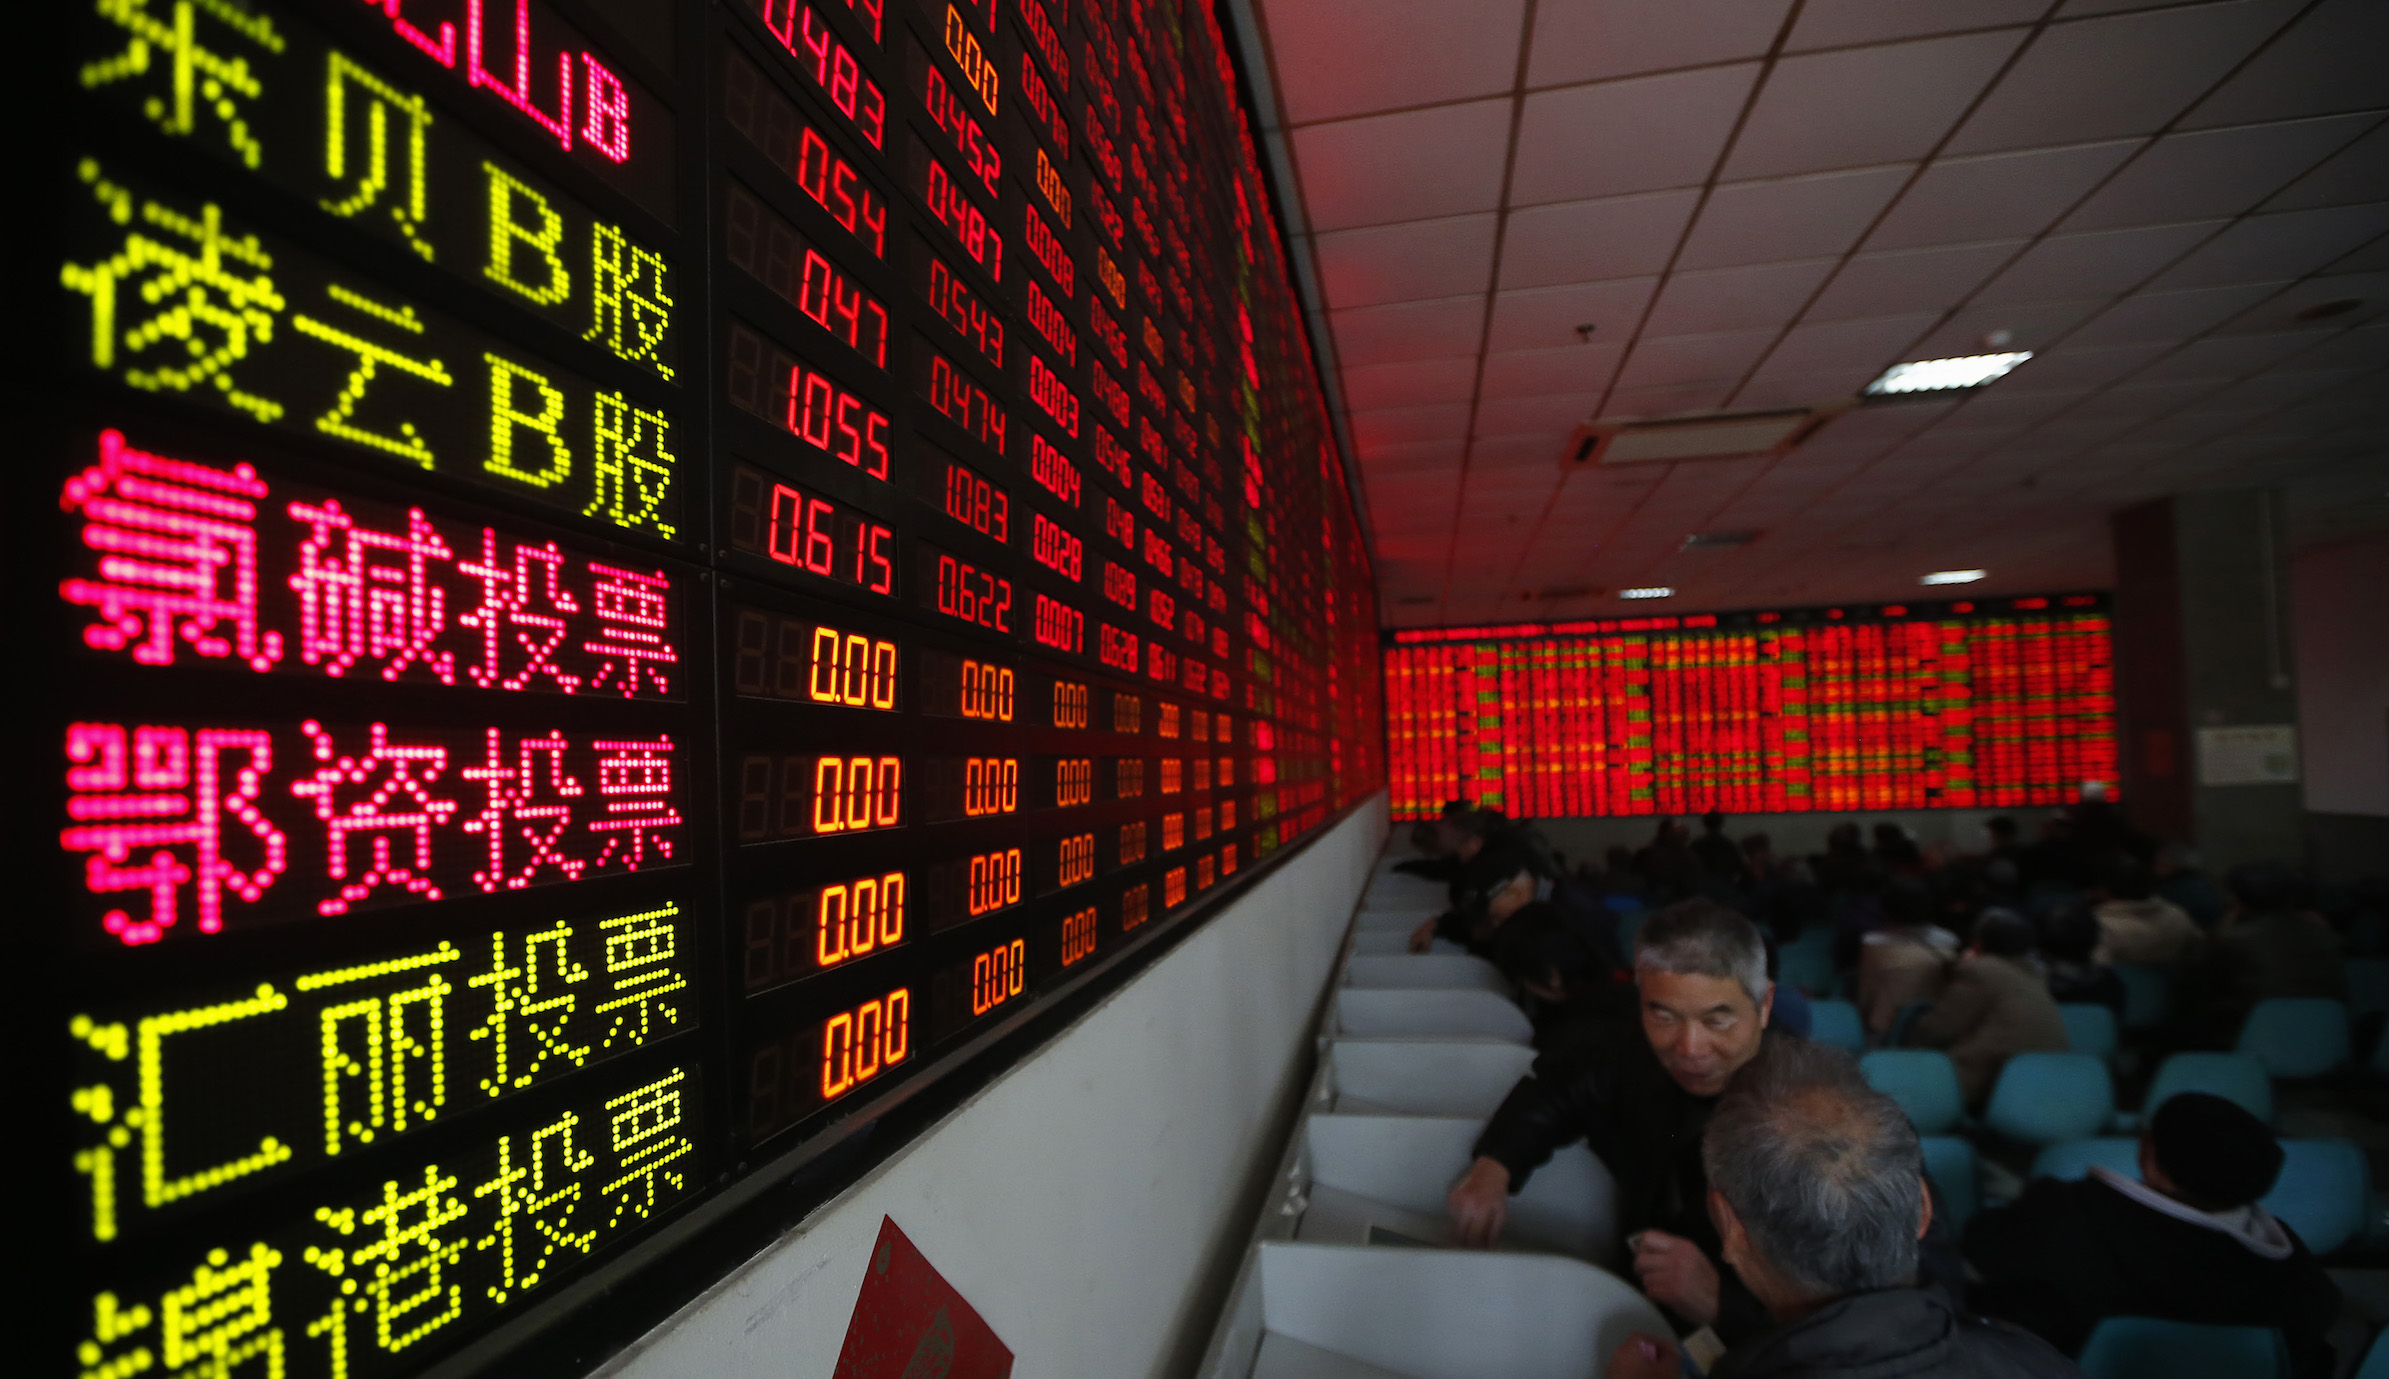 Investors look at computer screens showing stock information at a brokerage house in Shanghai January 5, 2015. China stocks surged to their highest close in five years on Monday, led upward by property and energy shares. REUTERS/Aly Song (CHINA - Tags: BUSINESS) - RTR4K2DR